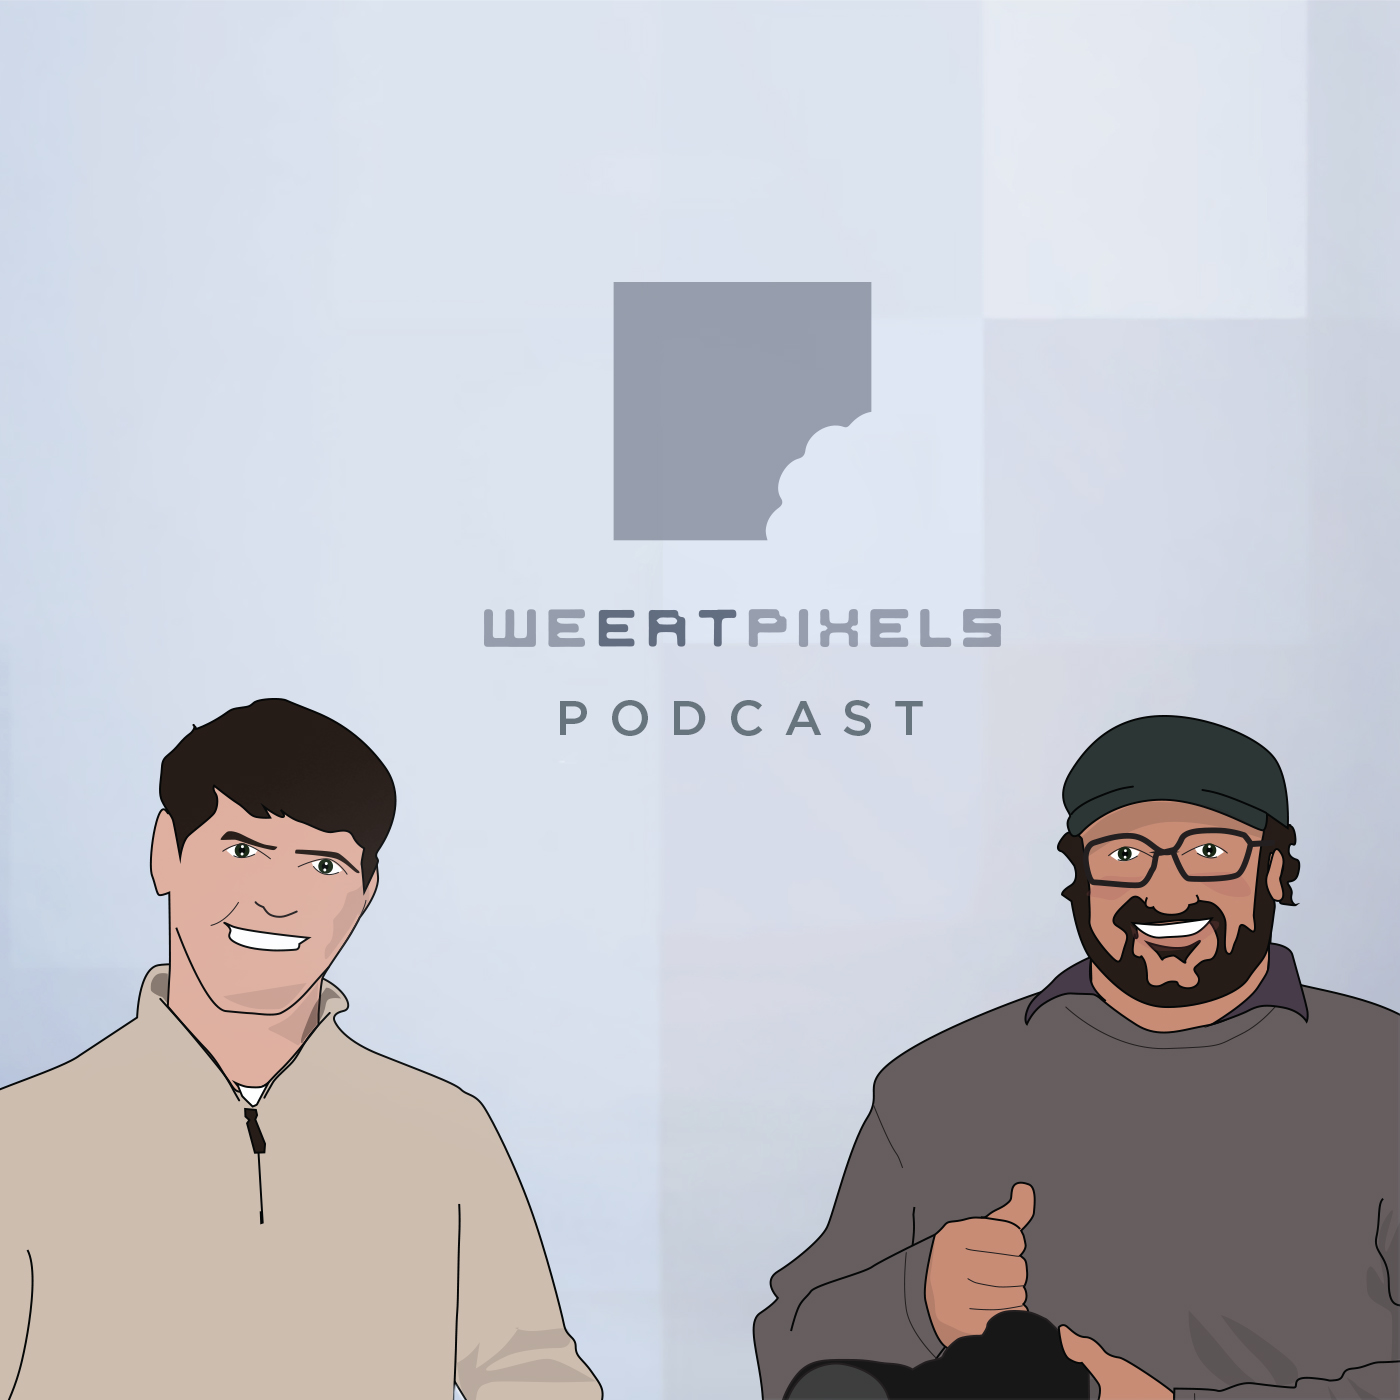 We Eat Pixels Podcast